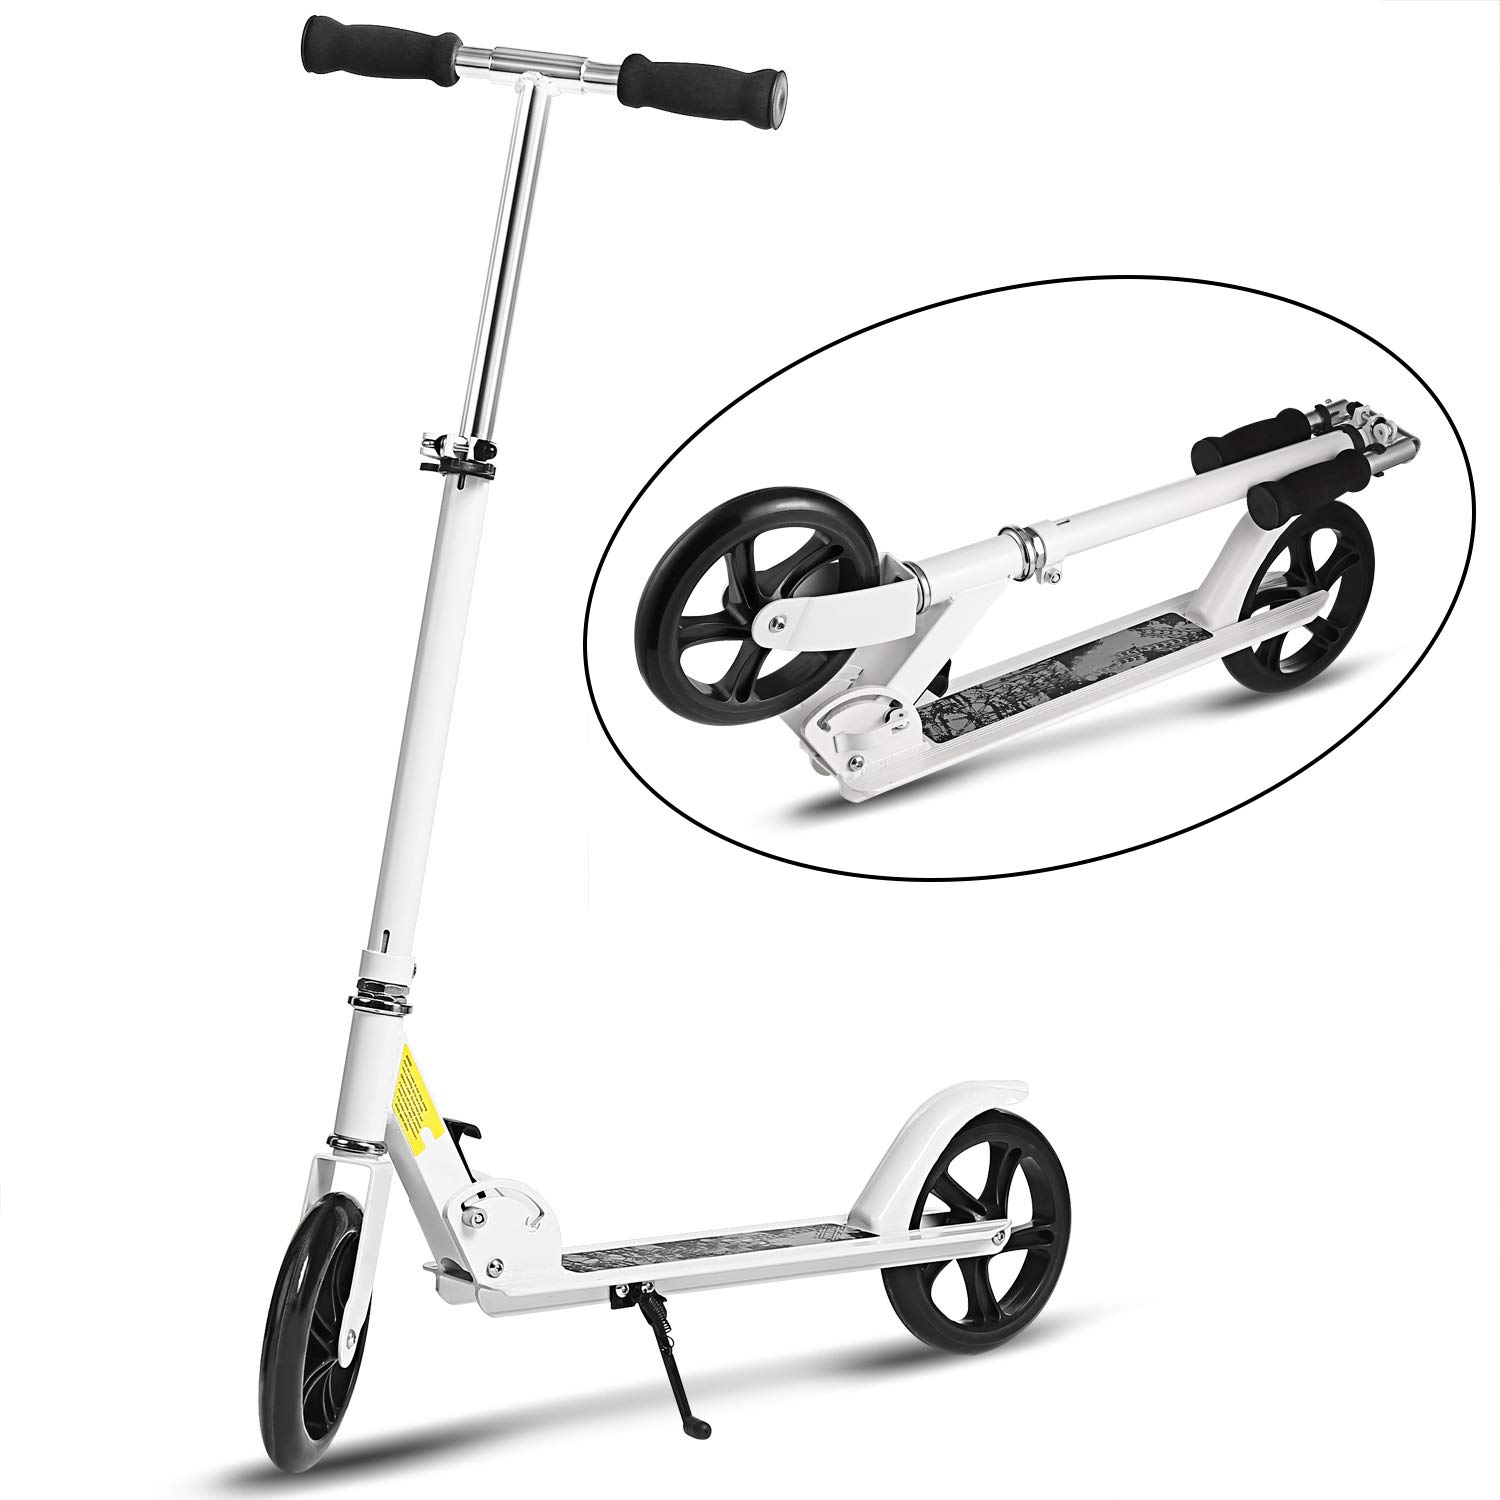 WeSkate Adult Scooter Teenager Foldable 3 Levels Adjustable Height 2-Wheel Kick Scooter for Teens Young Women Men Support 100KG(220lbs) Weight by WeSkate